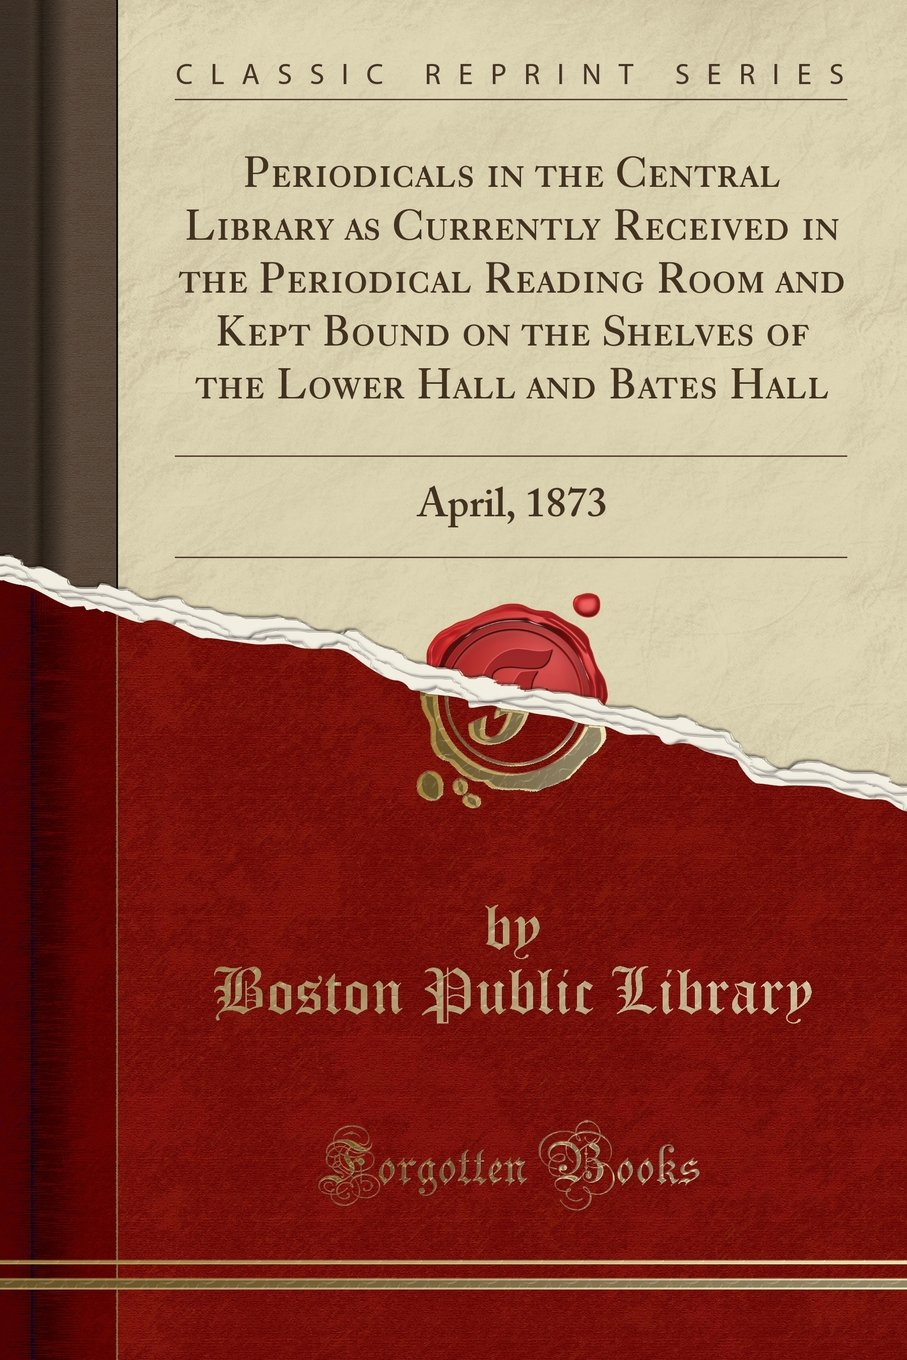 Periodicals in the Central Library as Currently Received in the Periodical Reading Room and Kept Bound on the Shelves of the Lower Hall and Bates Hall: April, 1873 (Classic Reprint) ebook